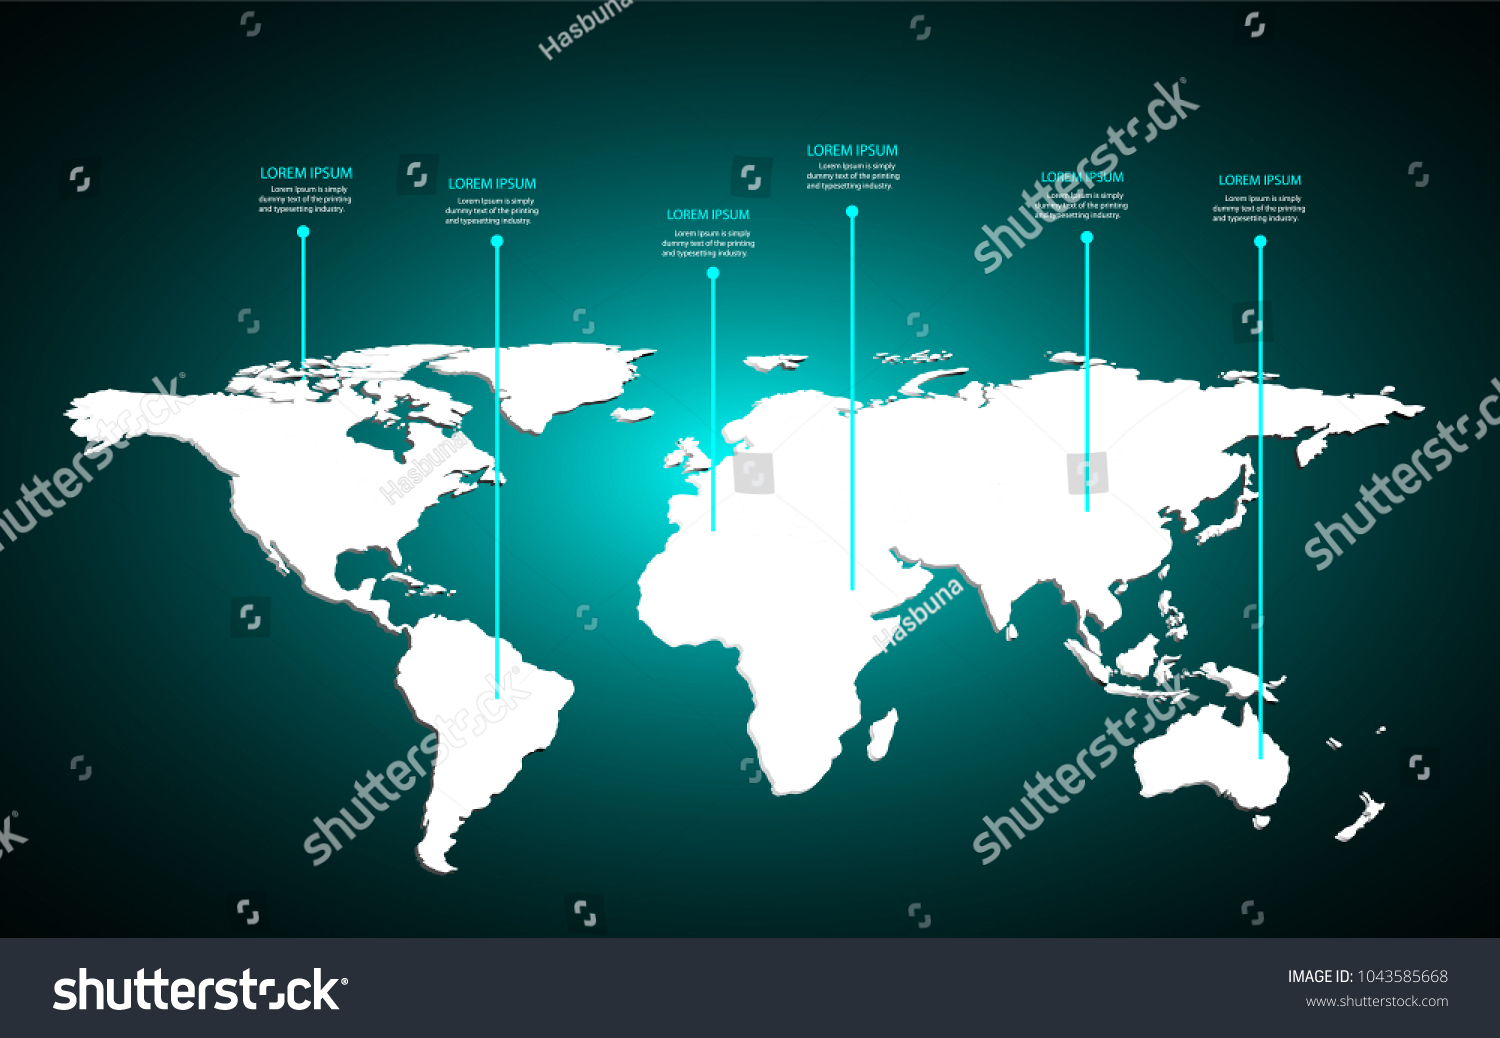 World map infographic template colorful origami vectores en stock world map infographic template colorful origami vectores en stock 1043585668 shutterstock gumiabroncs Choice Image